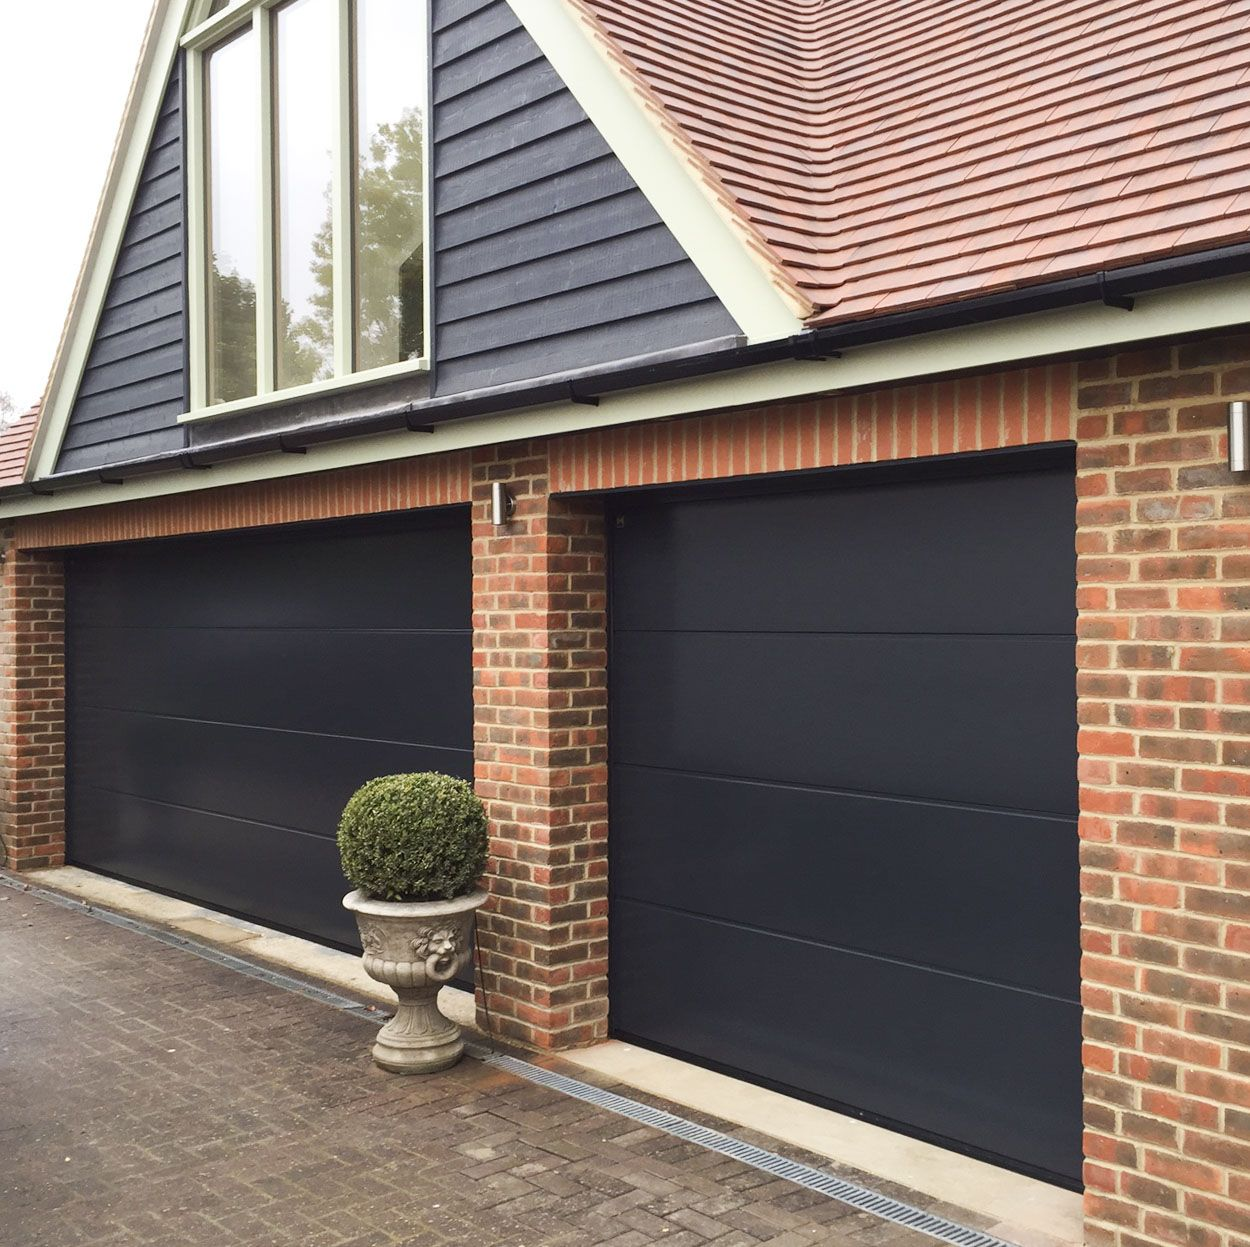 Two Beautiful Sectional Garage Doors One Double And One Single Width Garage Architecture Garage Door Styles Sectional Garage Doors Garage Door Types